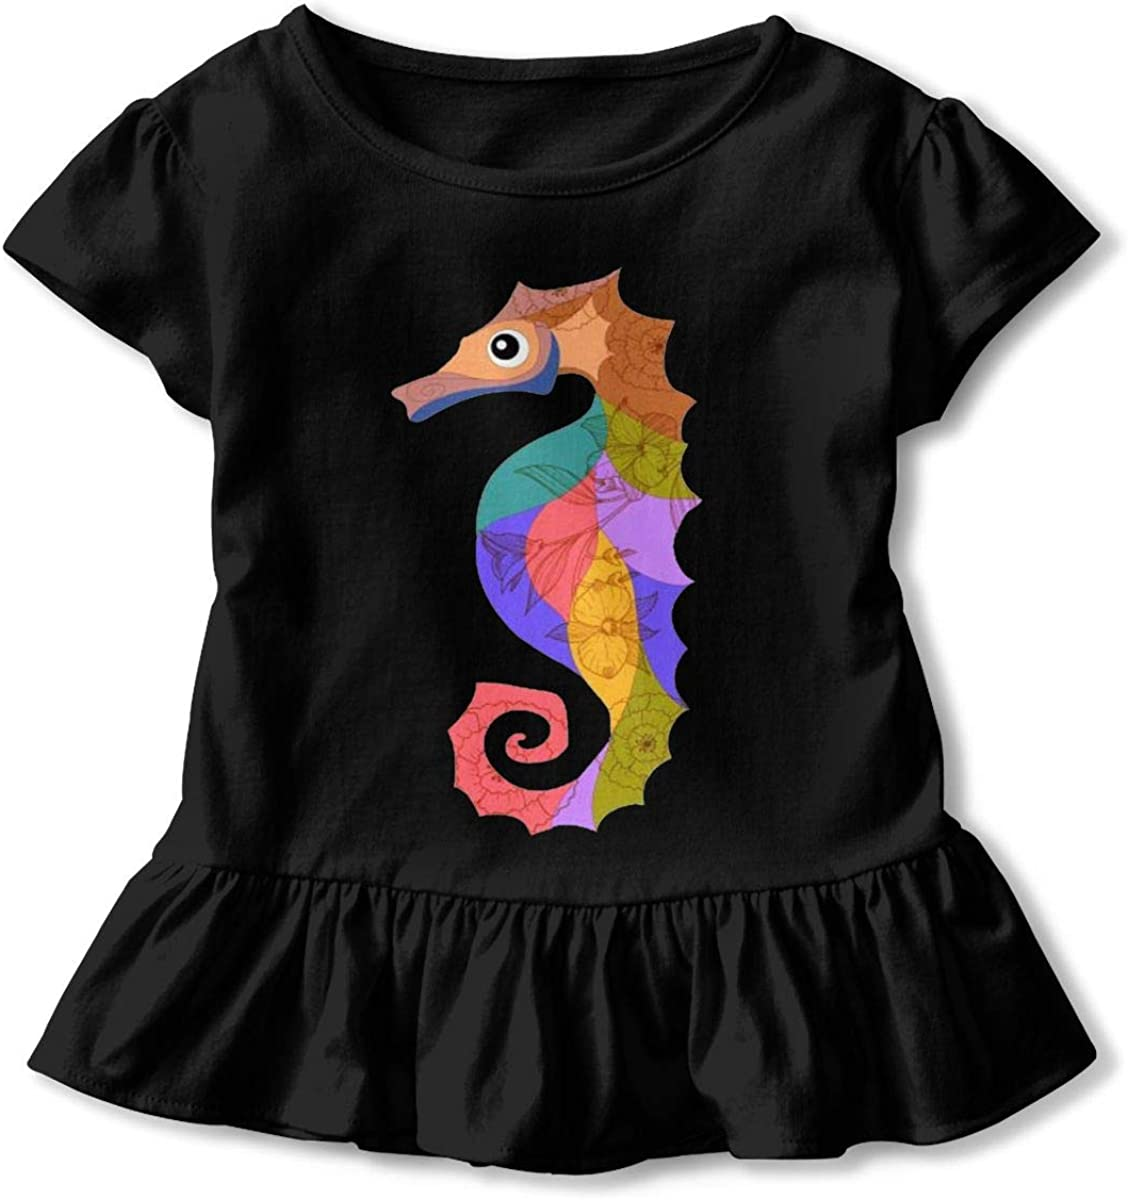 Not Available Colorful Seahorse Shirt Baby Girls Flounced Cotton Basic Shirt for 2-6 Years Old Baby